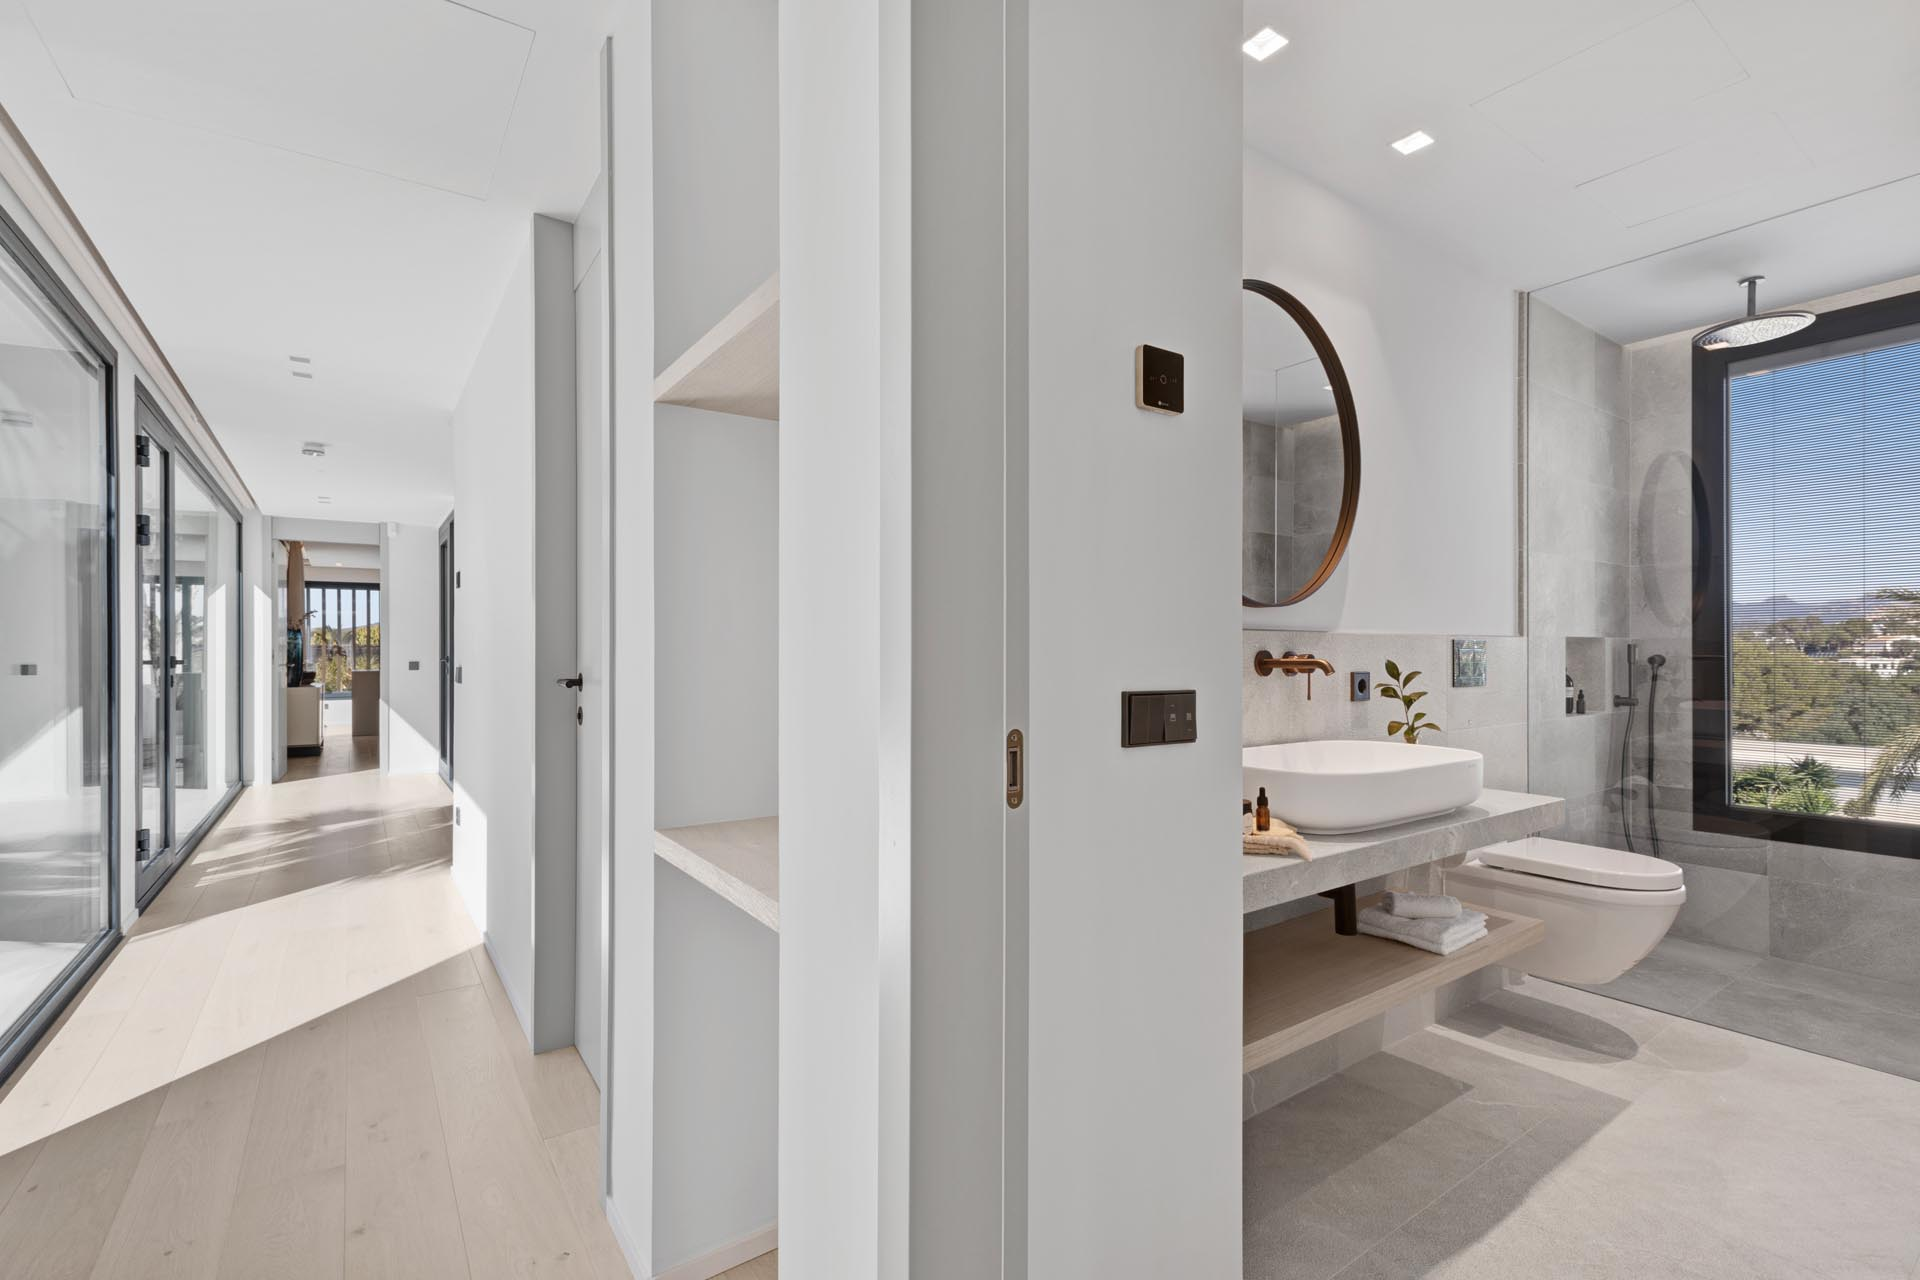 In this modern bathroom, there's a large window that provides tree views from the shower.